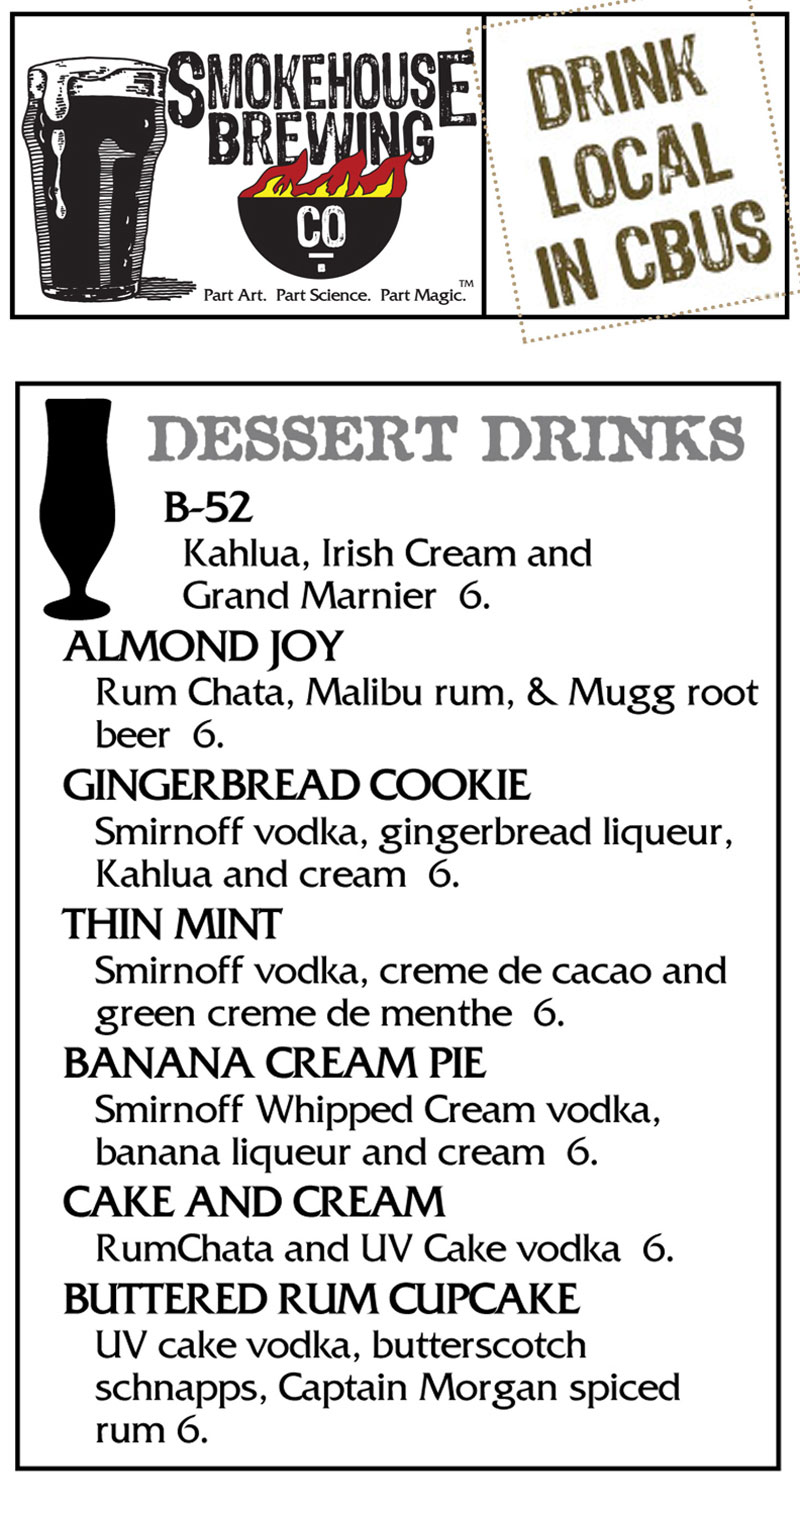 Smokehouse Brewing Company Dessert Beverages